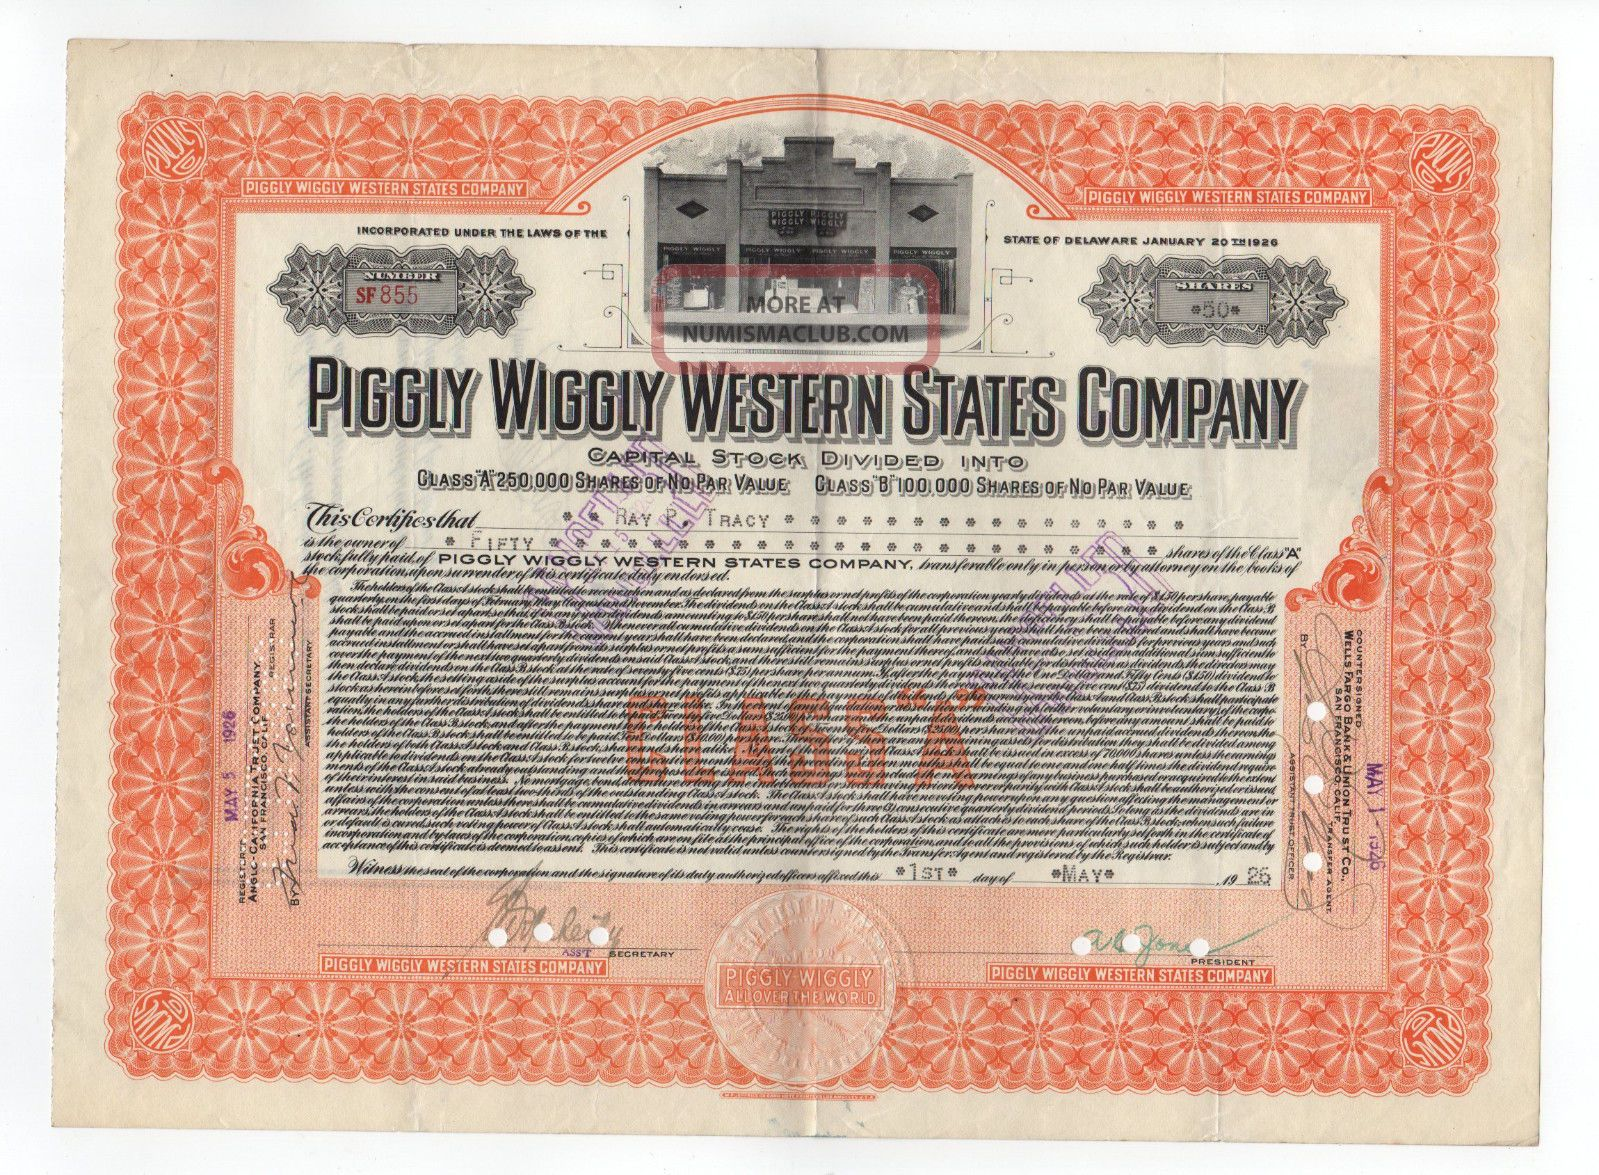 Piggly Wiggly Western States Company Stock Certificate Stocks & Bonds, Scripophily photo